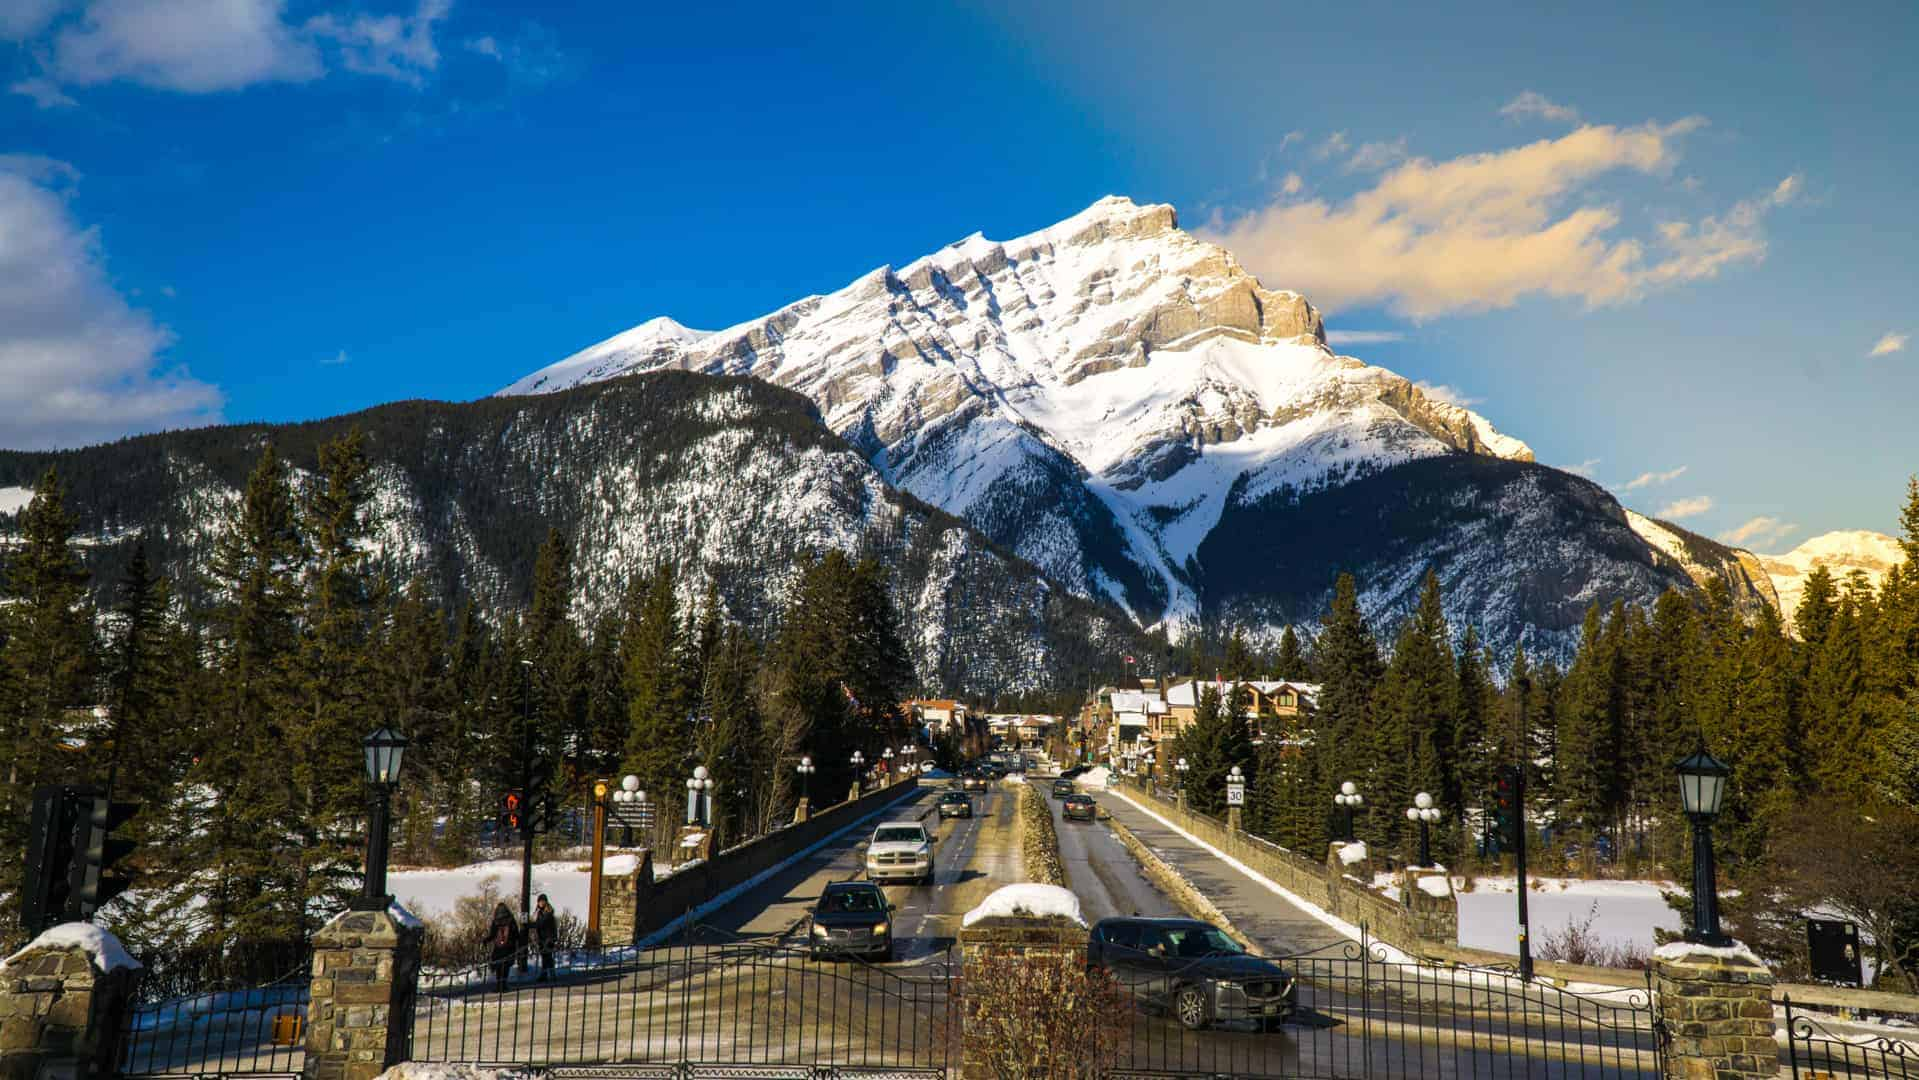 Banff-Sunshine-Village-Skiing-1